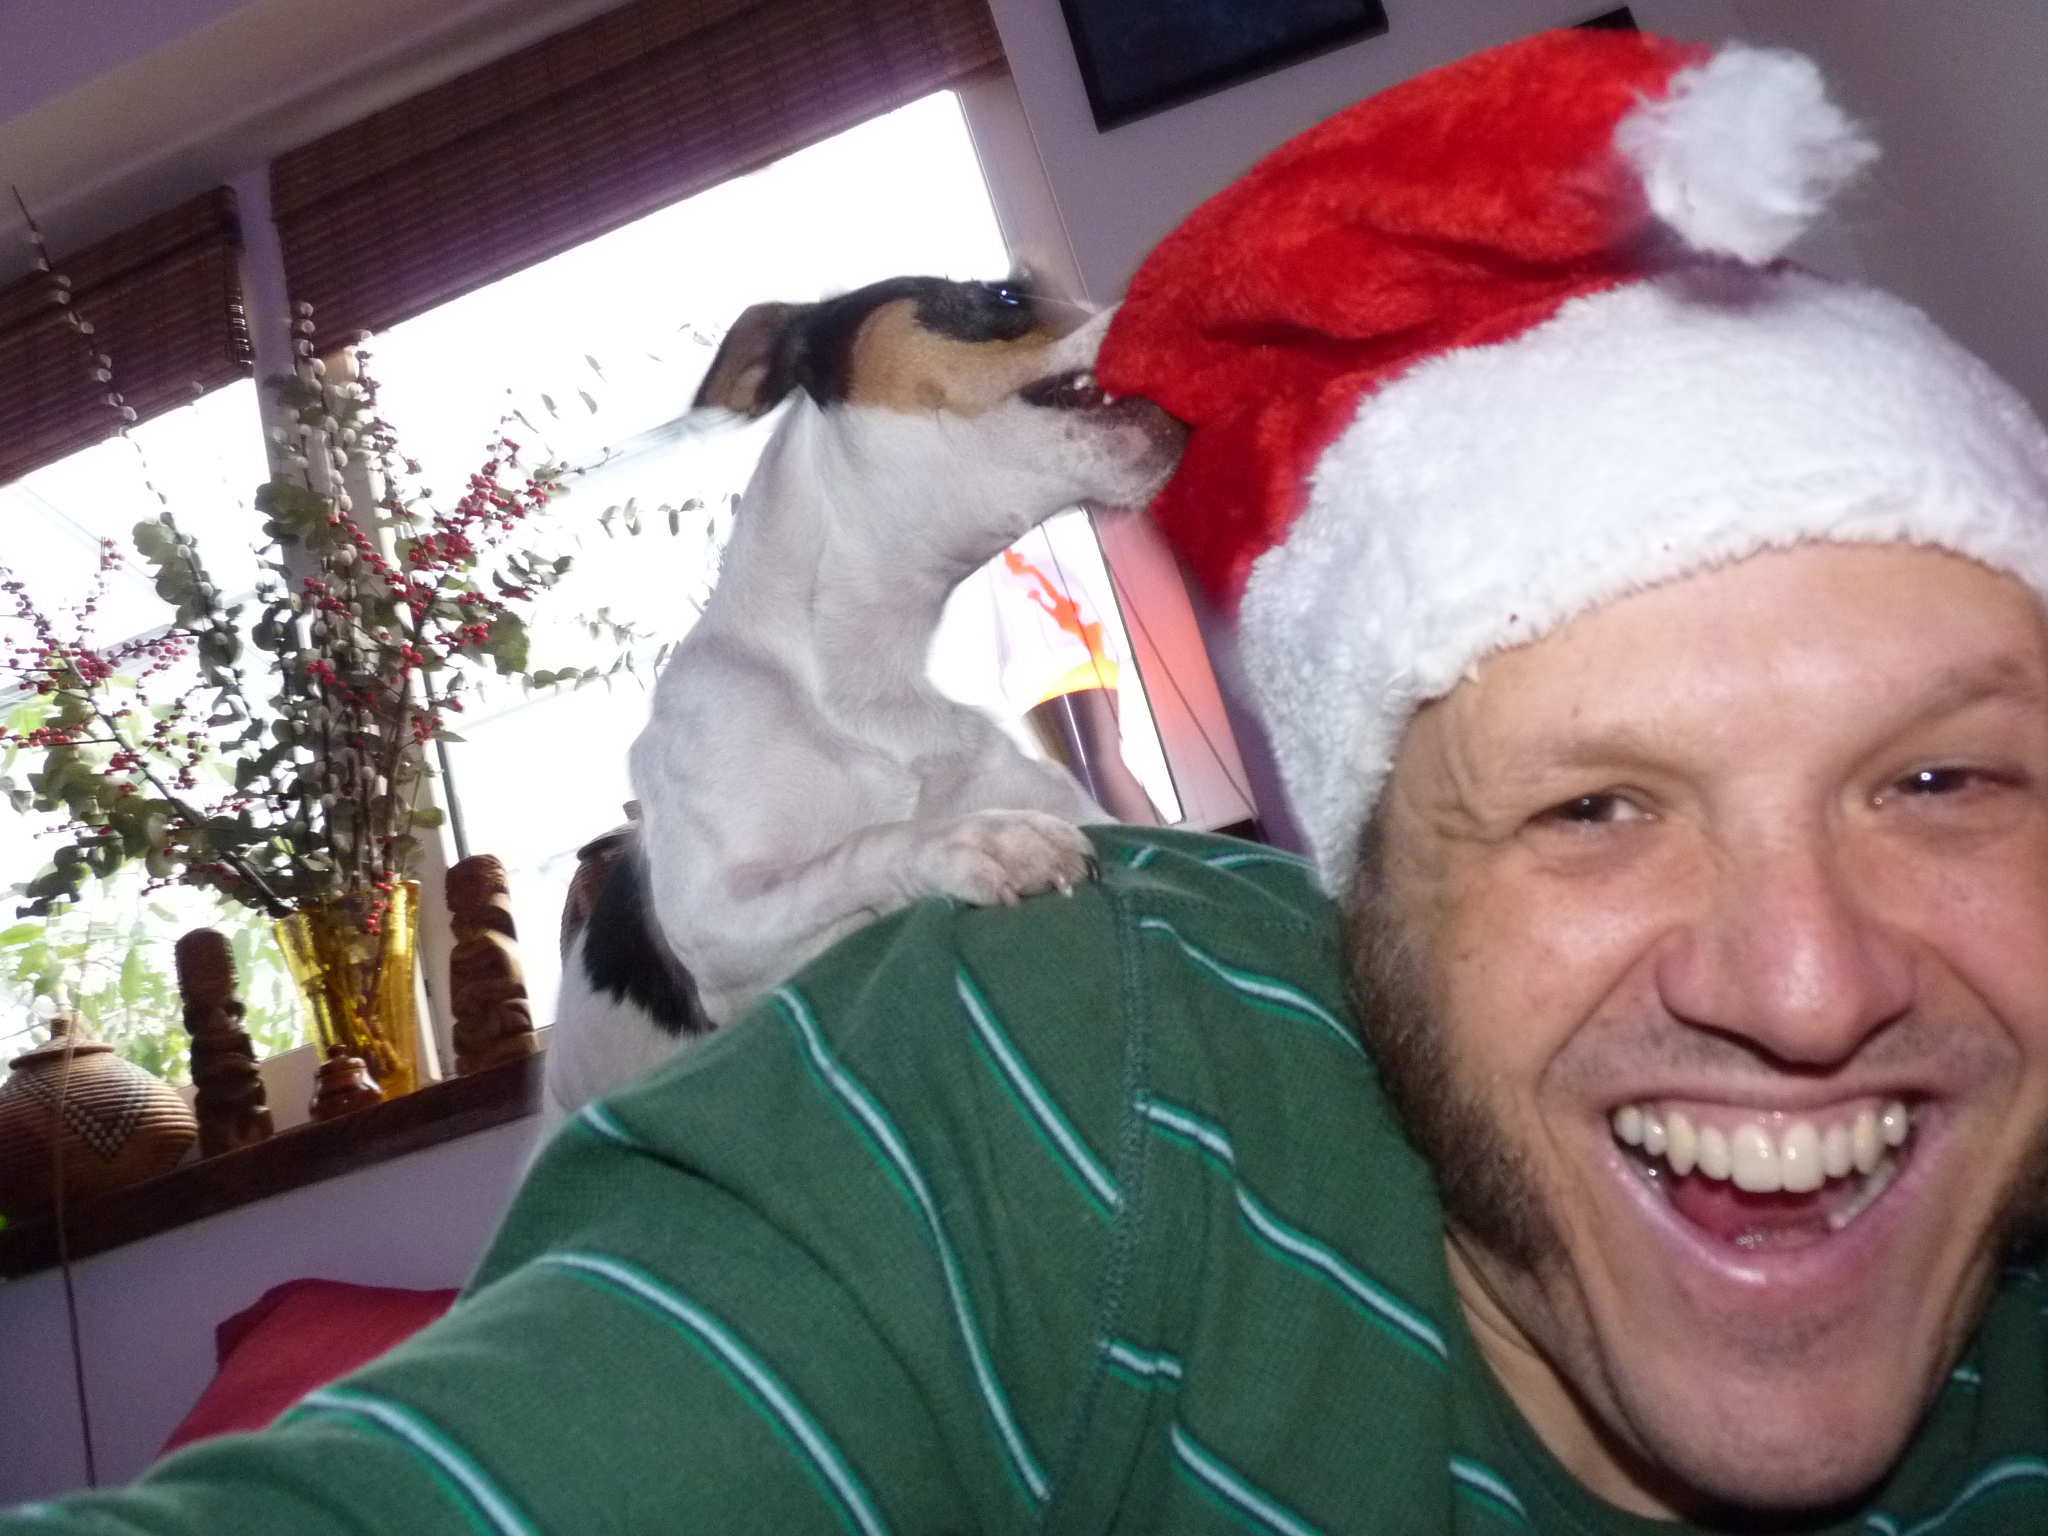 I hate Santa Hats! Do you know why? (Don't worry, there is no right or wrong answer)